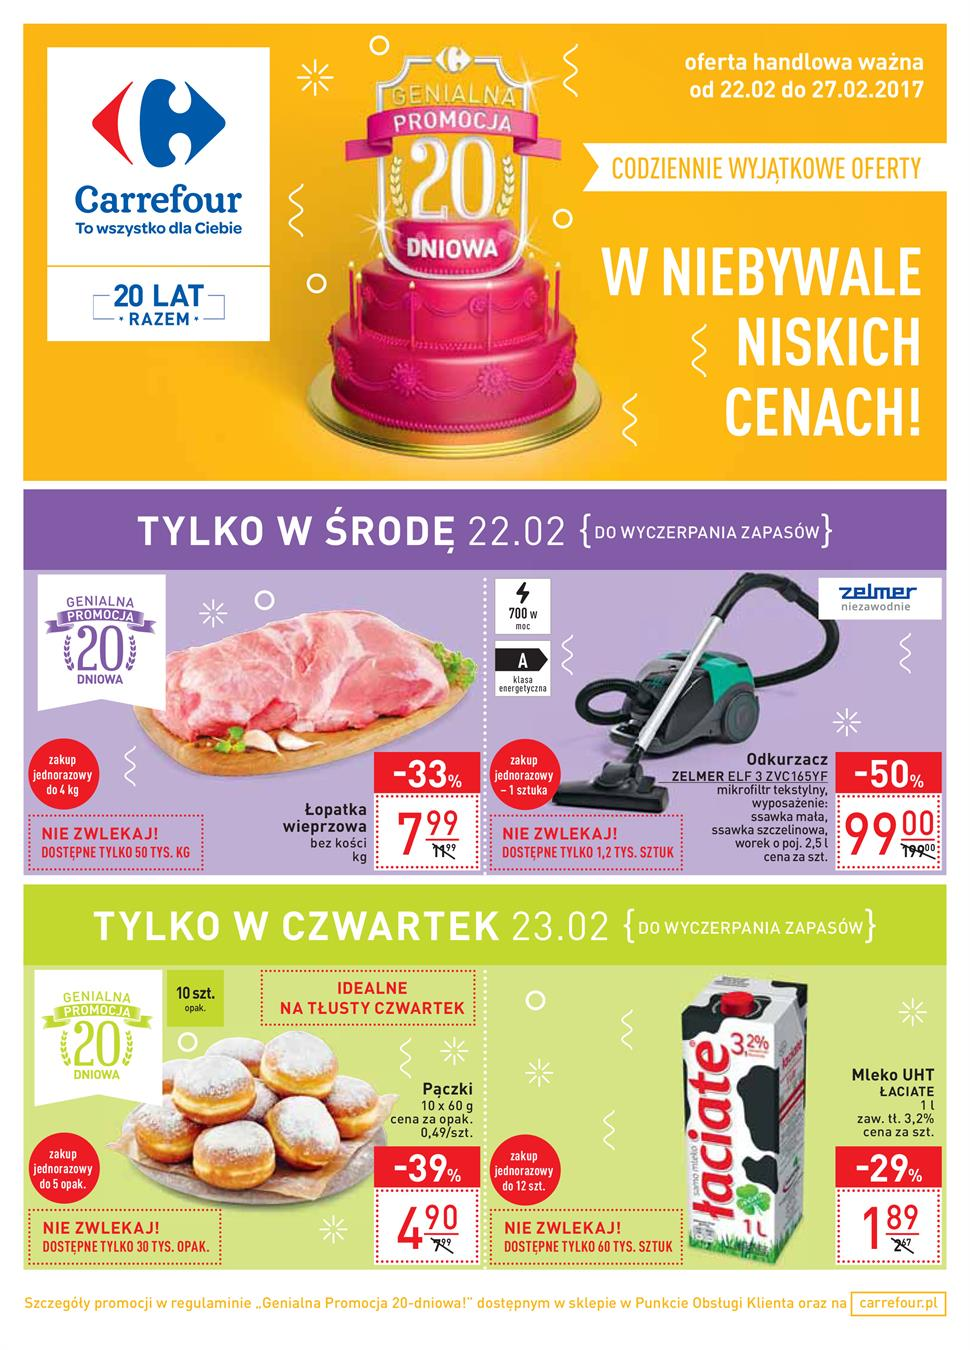 Gazetka Carrefour Polska Sp. z o.o. nr 0 od 2017-02-22 do 2017-02-27